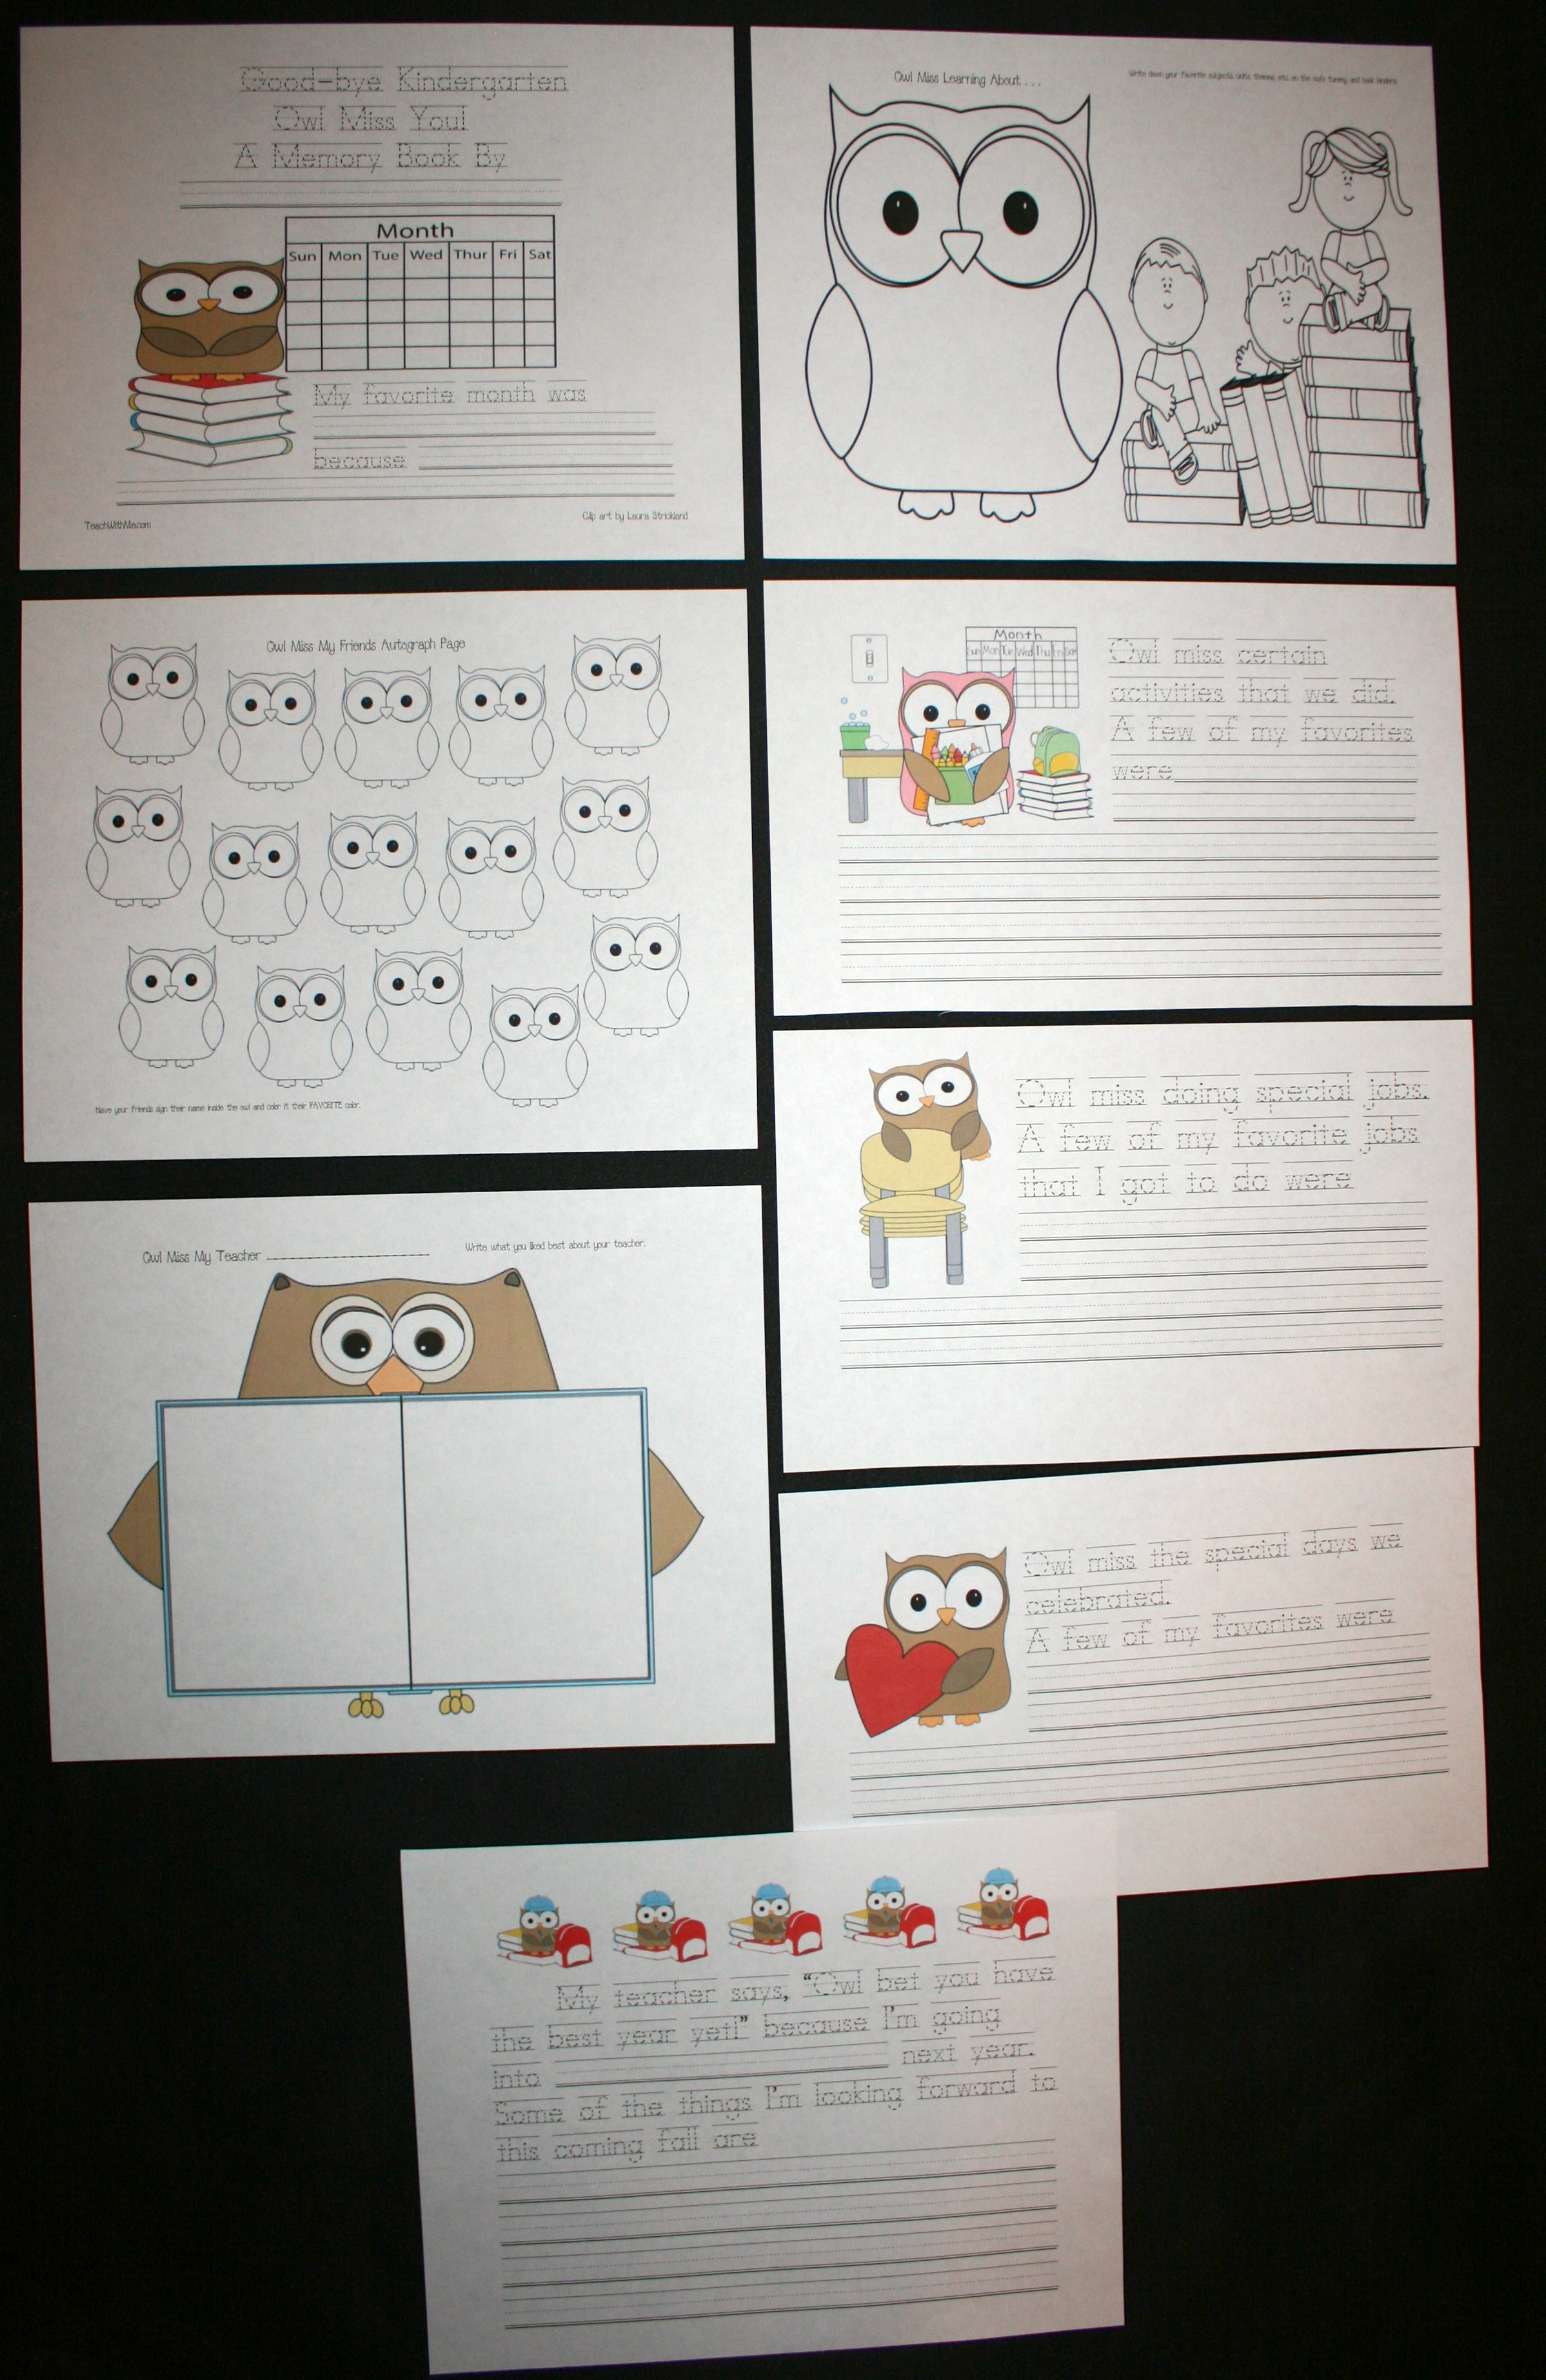 owl activities, owl crafts, memory books, free school memory book, end of the year writing prompts, may writing prompts, june writing prompts, graduation writing prompts, graduation ideas, owl miss writing prompts, class made books, class books, end of the year activities, end of the year daily 5, ccss end of the year, ccss for kindergarten, free ccss for kindergarten, kindergarten writing prompts, 1st grade writing prompts, 2nd grade writing prompts, 3rd grade writing prompts, autograph books,daily 5 for may, daily 5 for june,